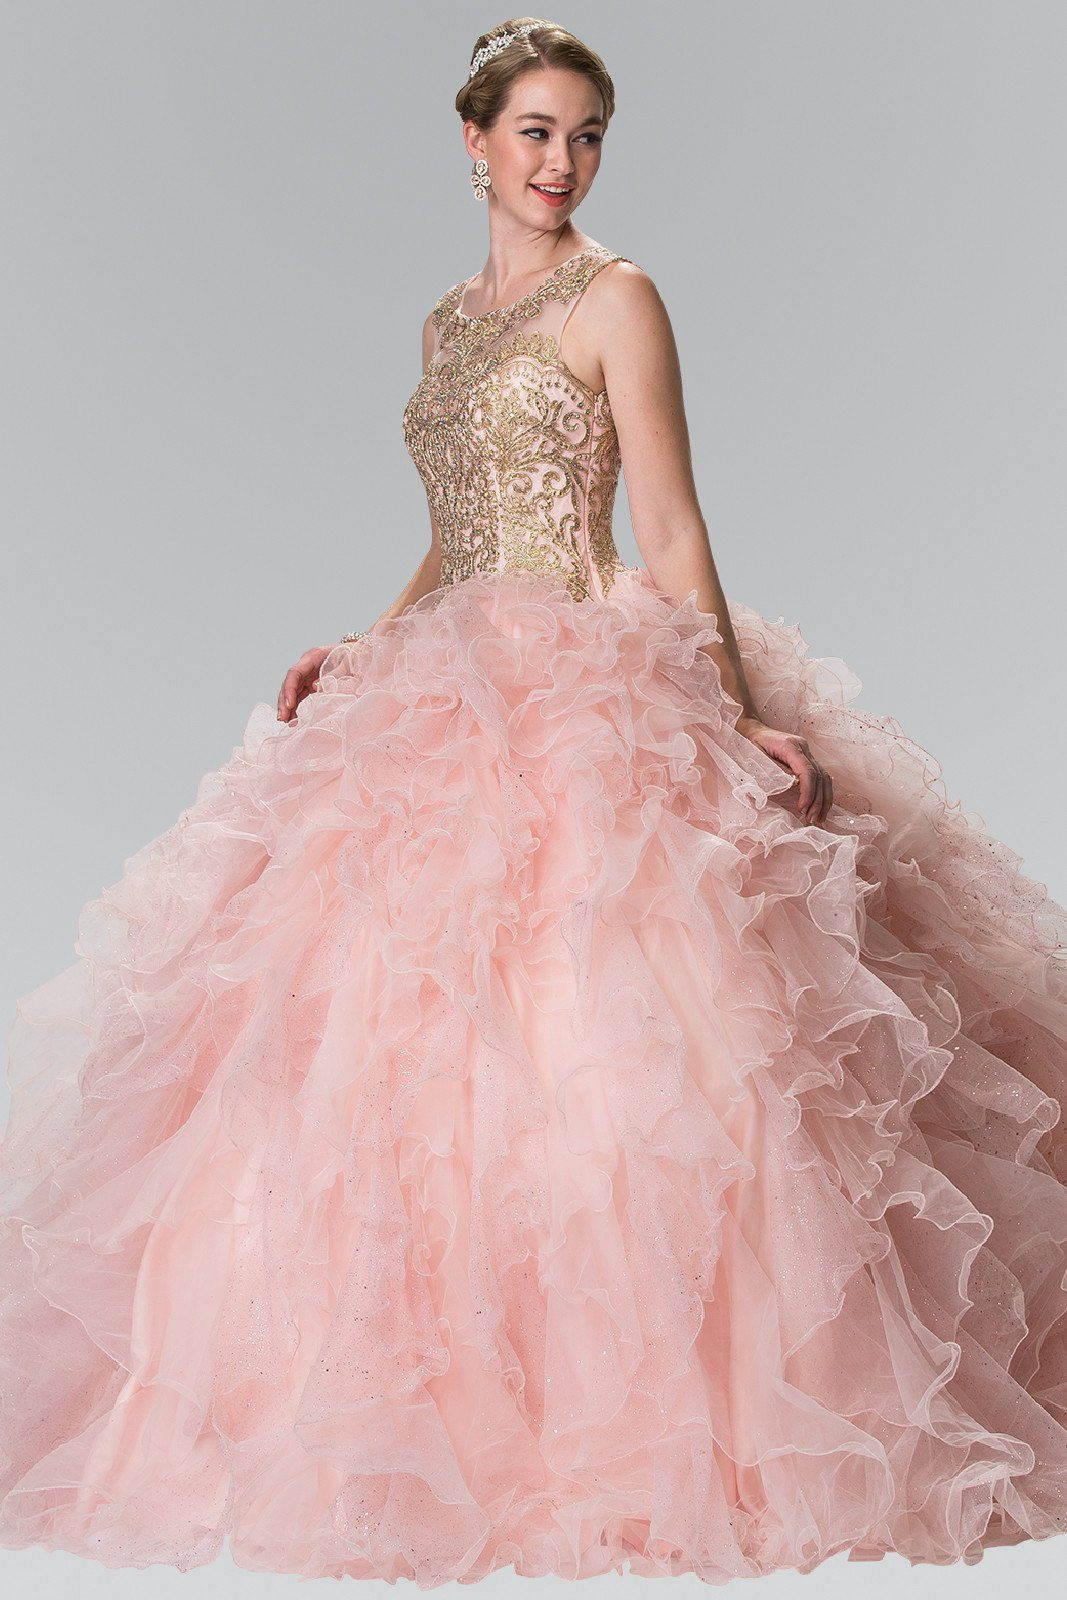 Pink and gold quinceanera dresses 2019